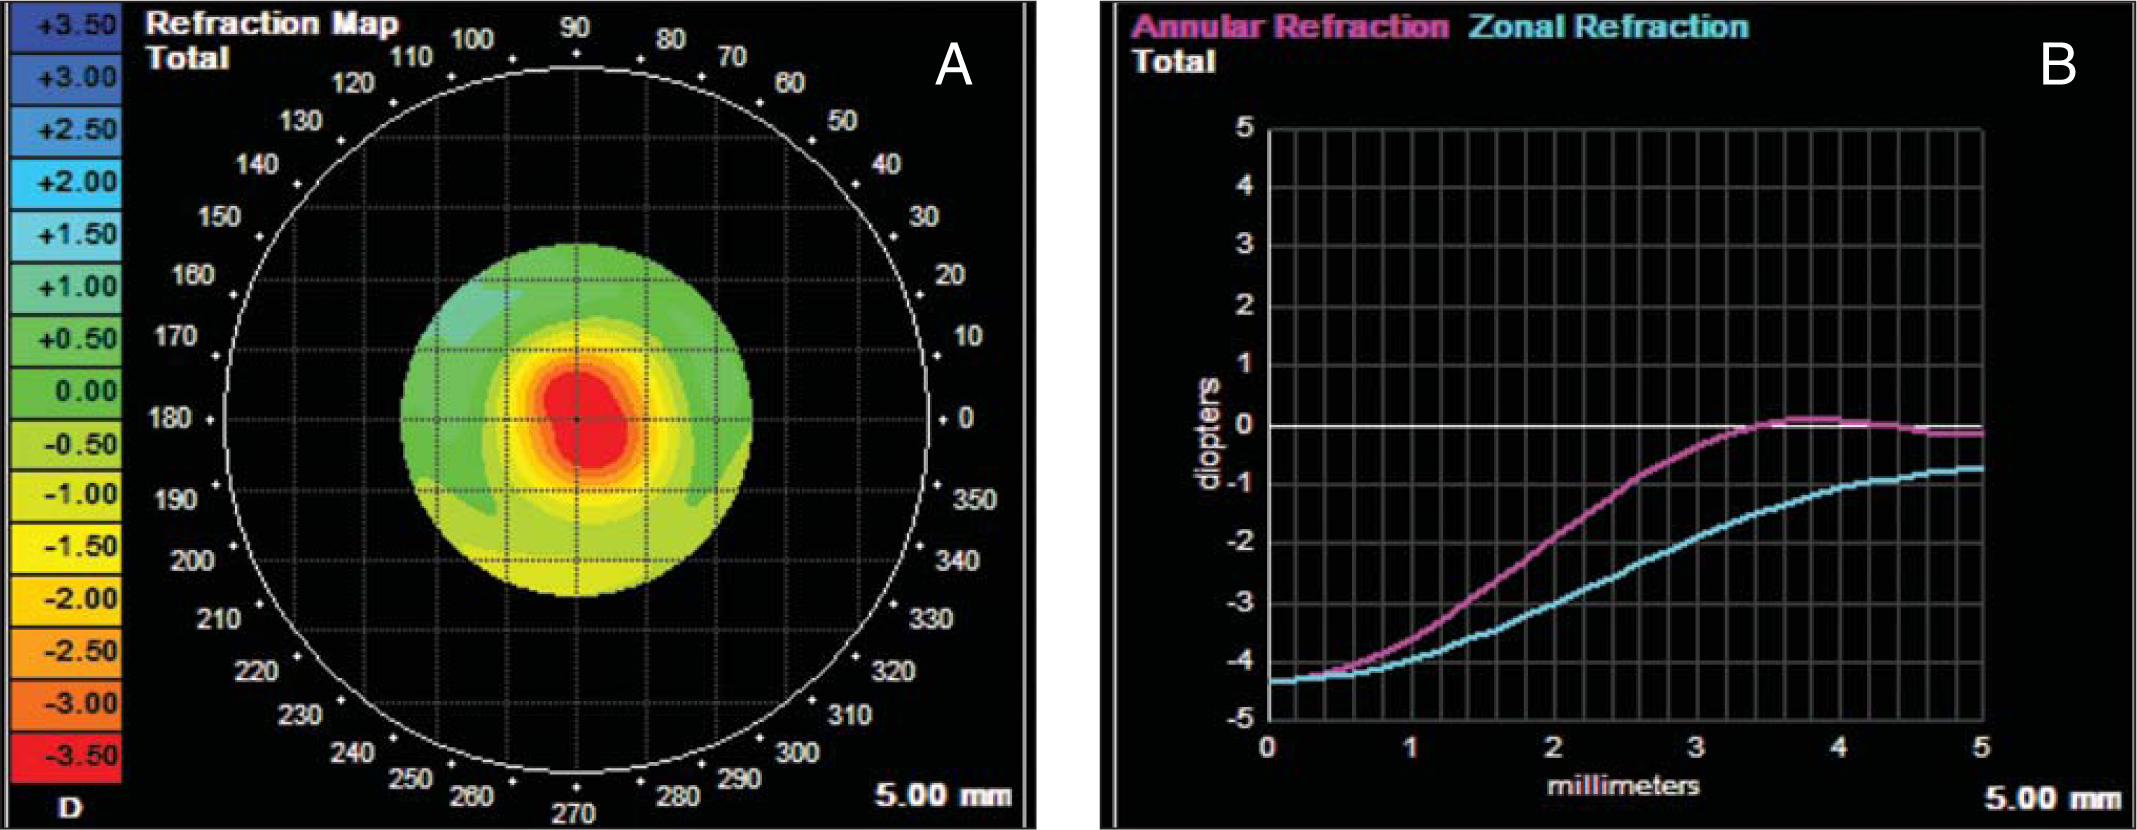 (A) A refraction map of a patient 6 months postoperatively as recorded and analyzed by an iTrace wavefront aberrometer (Tracey Technologies, Houston, TX). (B) Annular and zonal refraction plots derived from the refraction map in Figure 2A as output by the iTrace wavefront aberrometer.